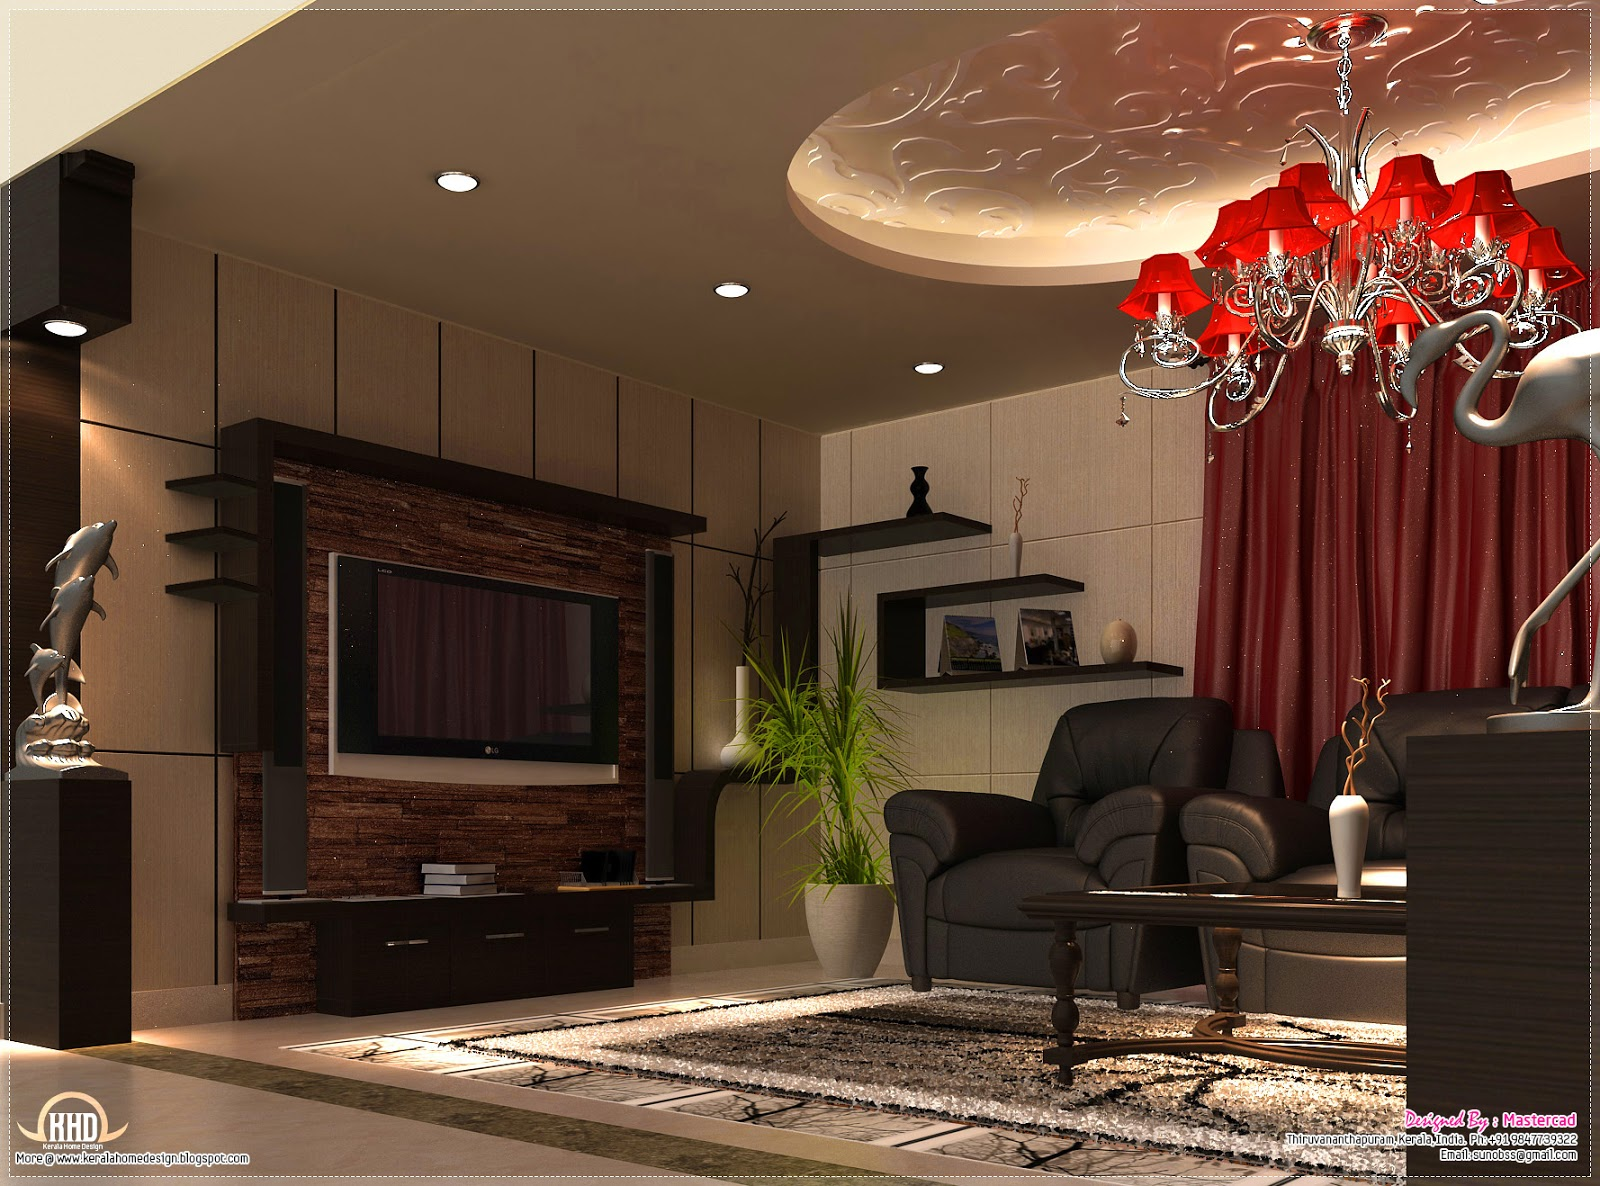 Interior design ideas kerala home design and floor plans Interior design ideas for kerala houses